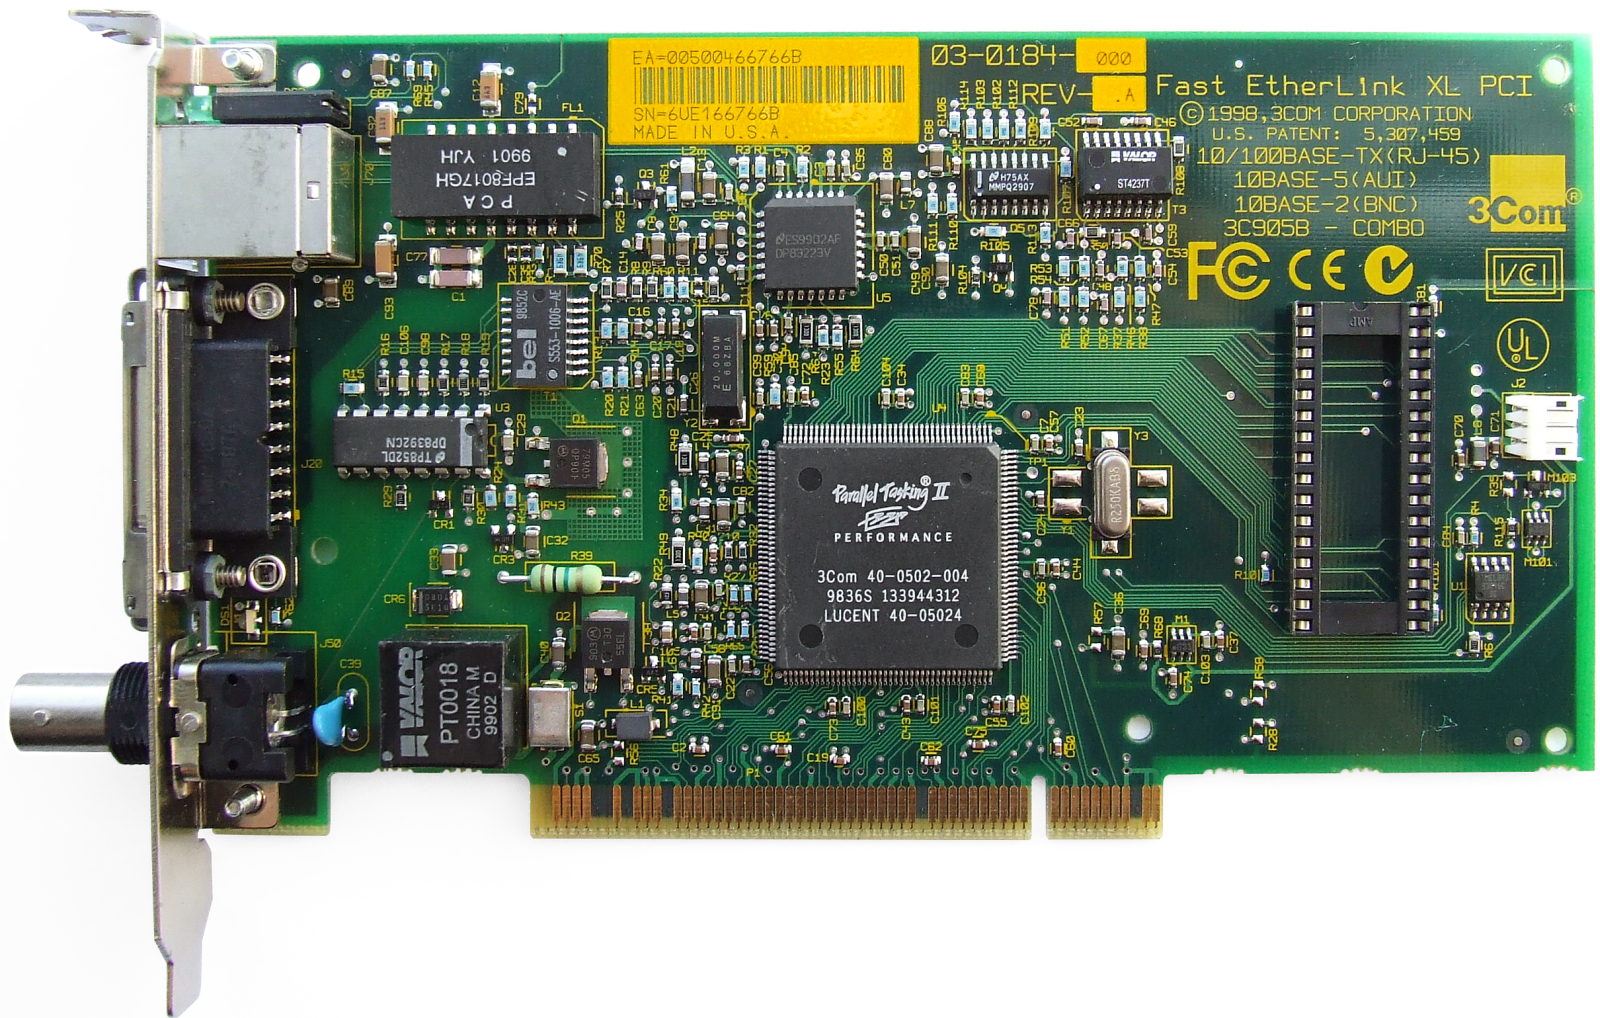 FAST ETHERLINK XL PCI DRIVERS FOR WINDOWS